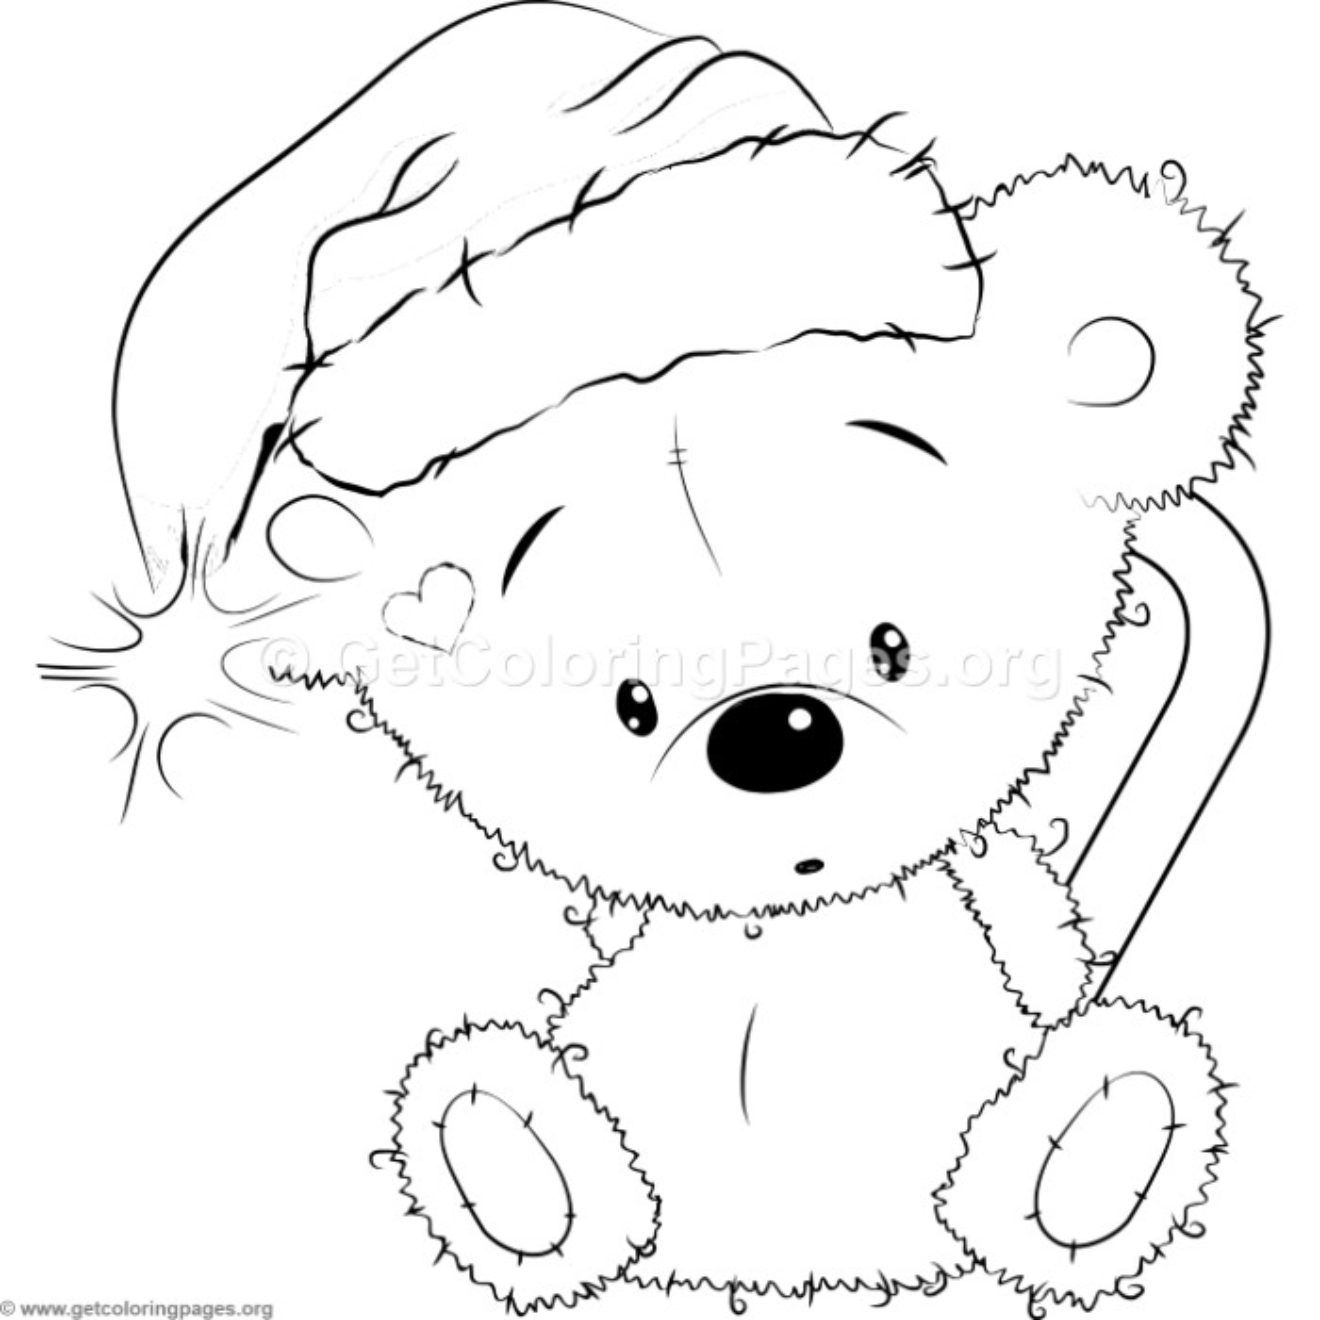 Cute Christmas Teddy Bear 1 Coloring Pages Cute Coloring Pages Coloring Pages Free Coloring Pages